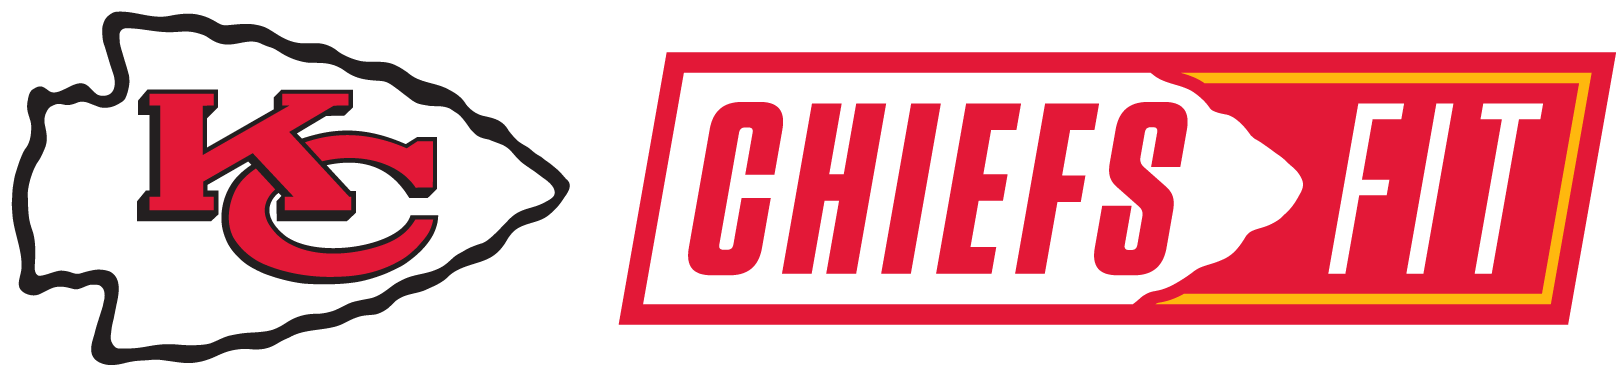 Chiefs Fit Logo